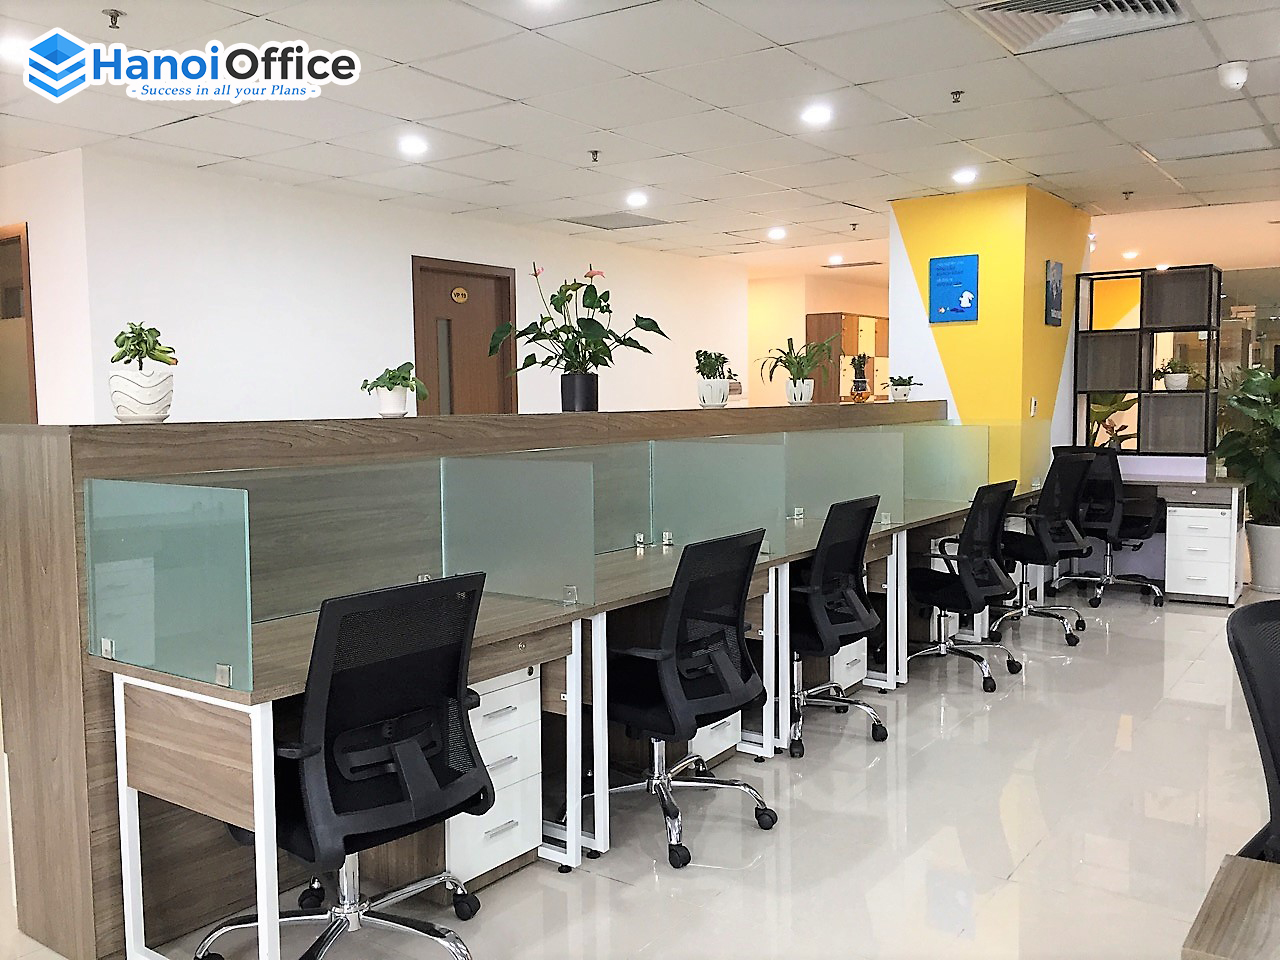 ha-dong-coworking-space-4